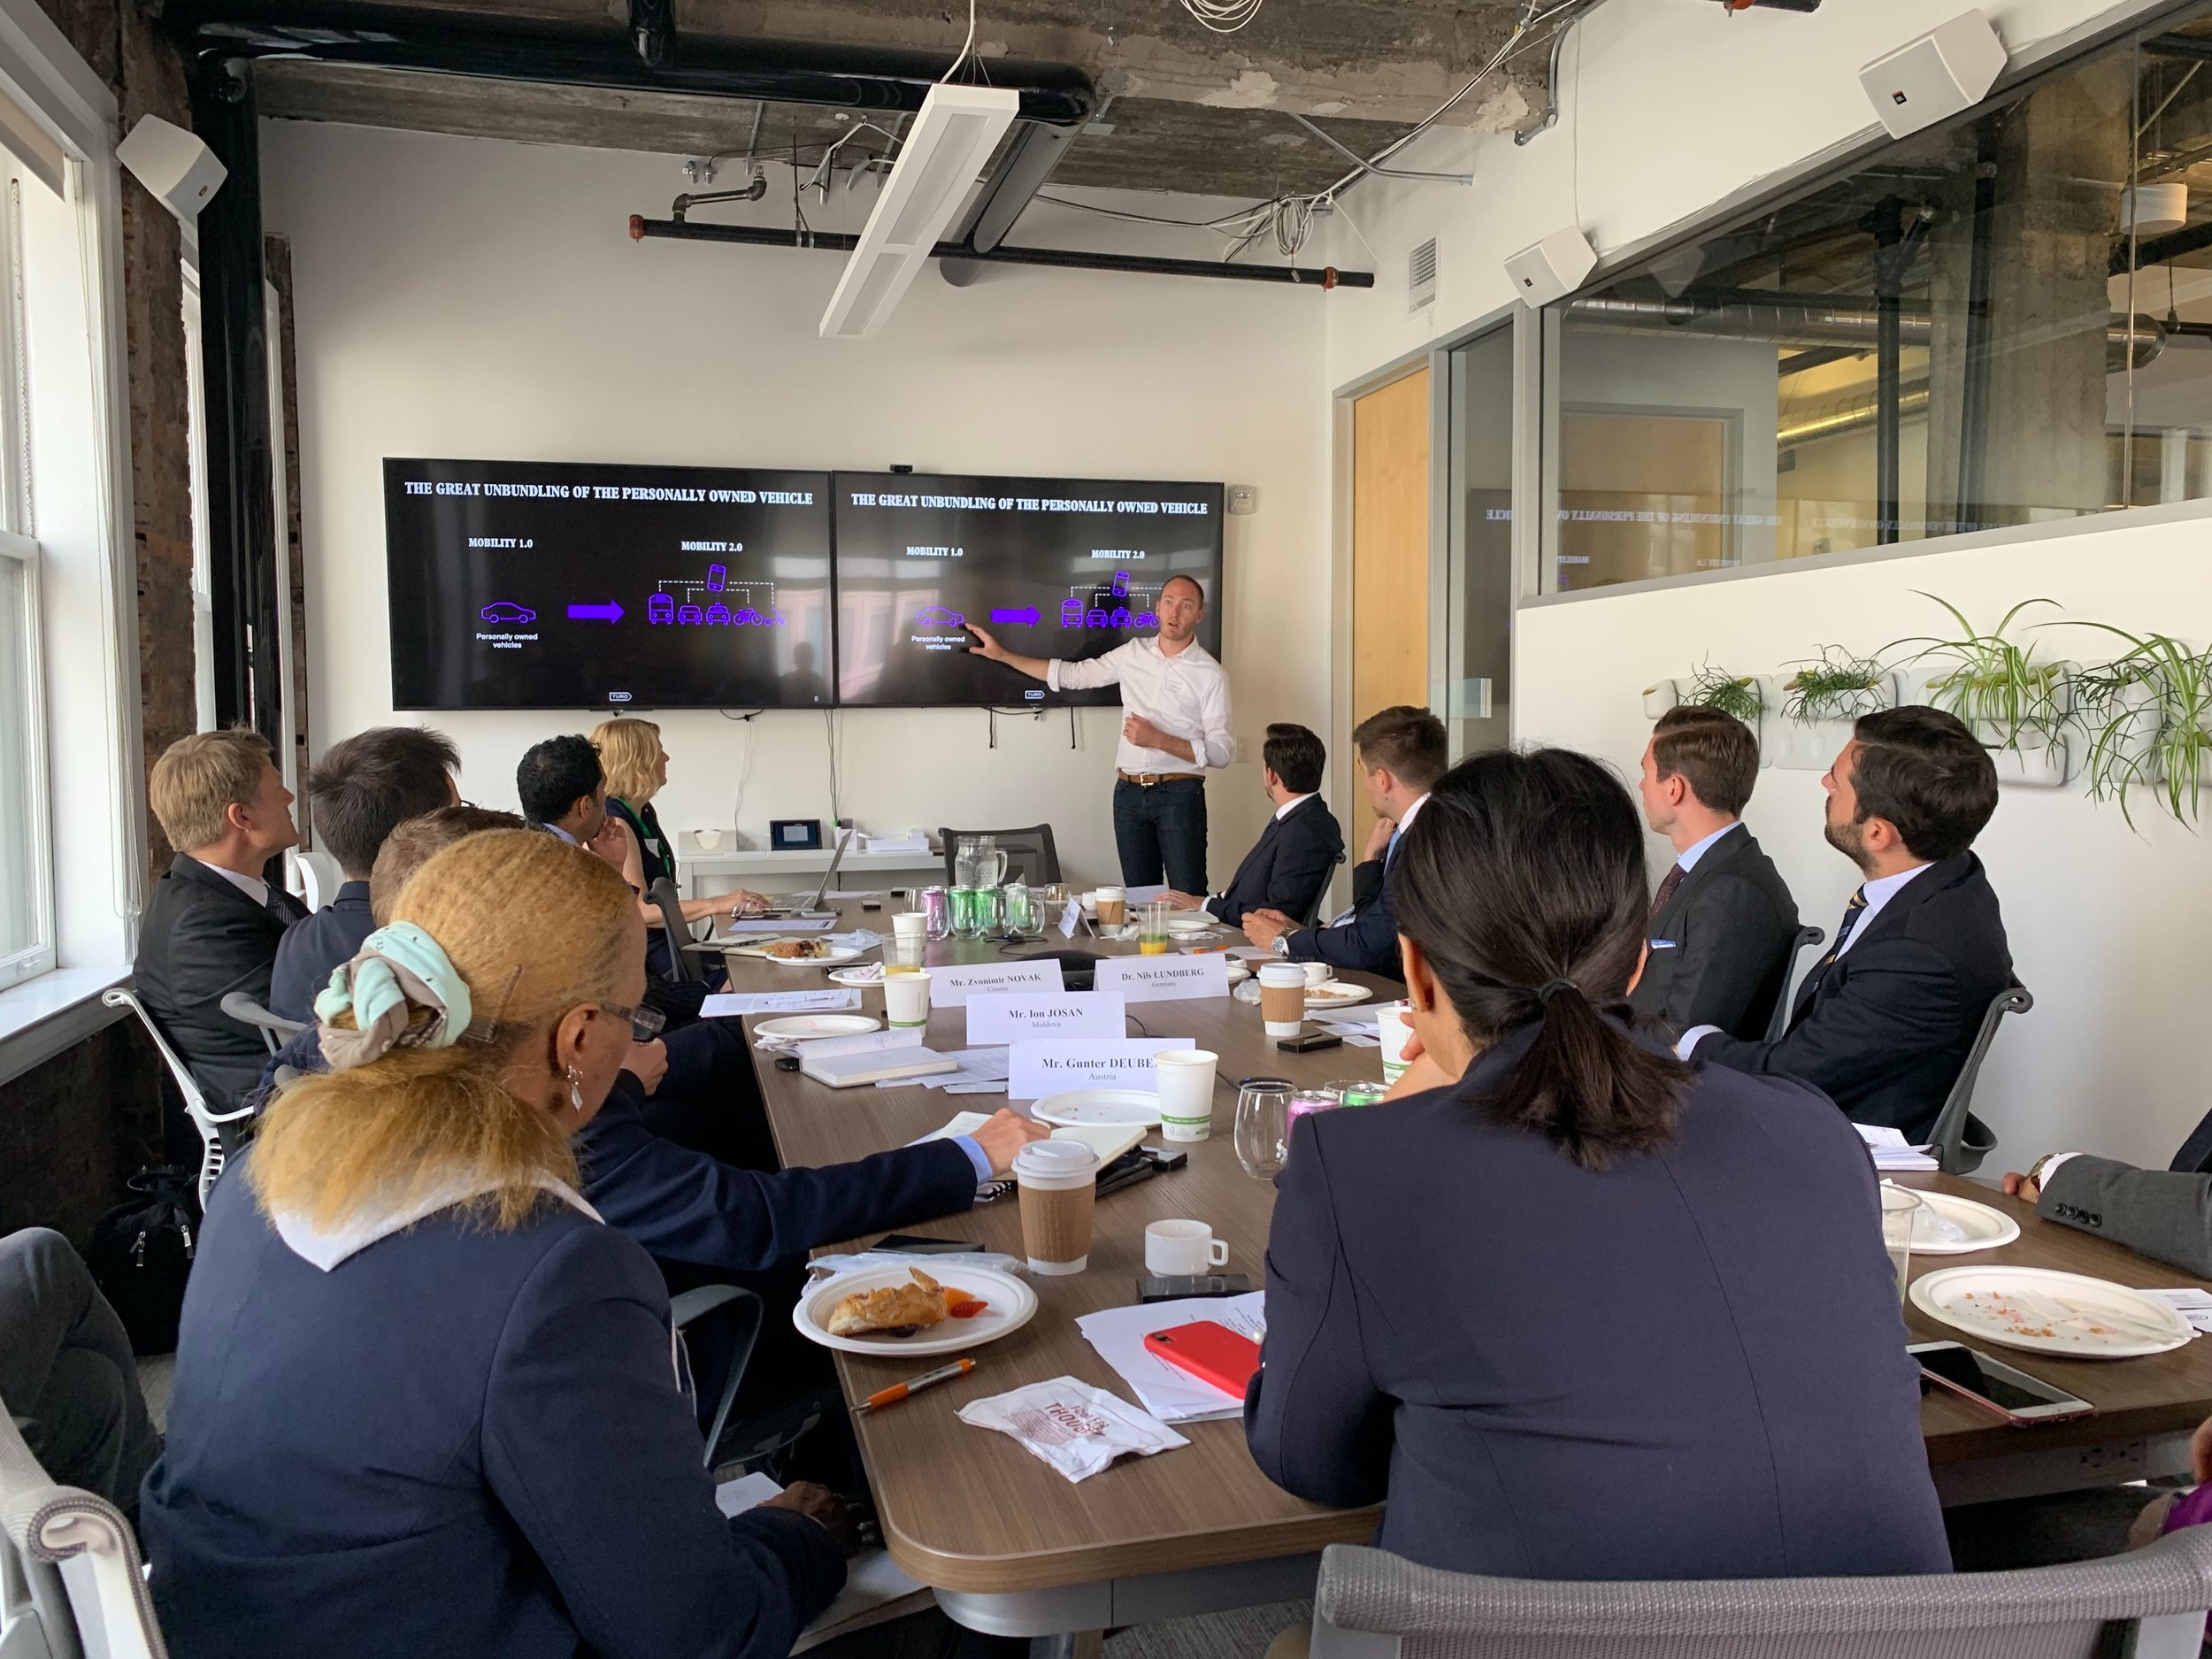 Charles speaking with a European Delegation about the future of mobility.